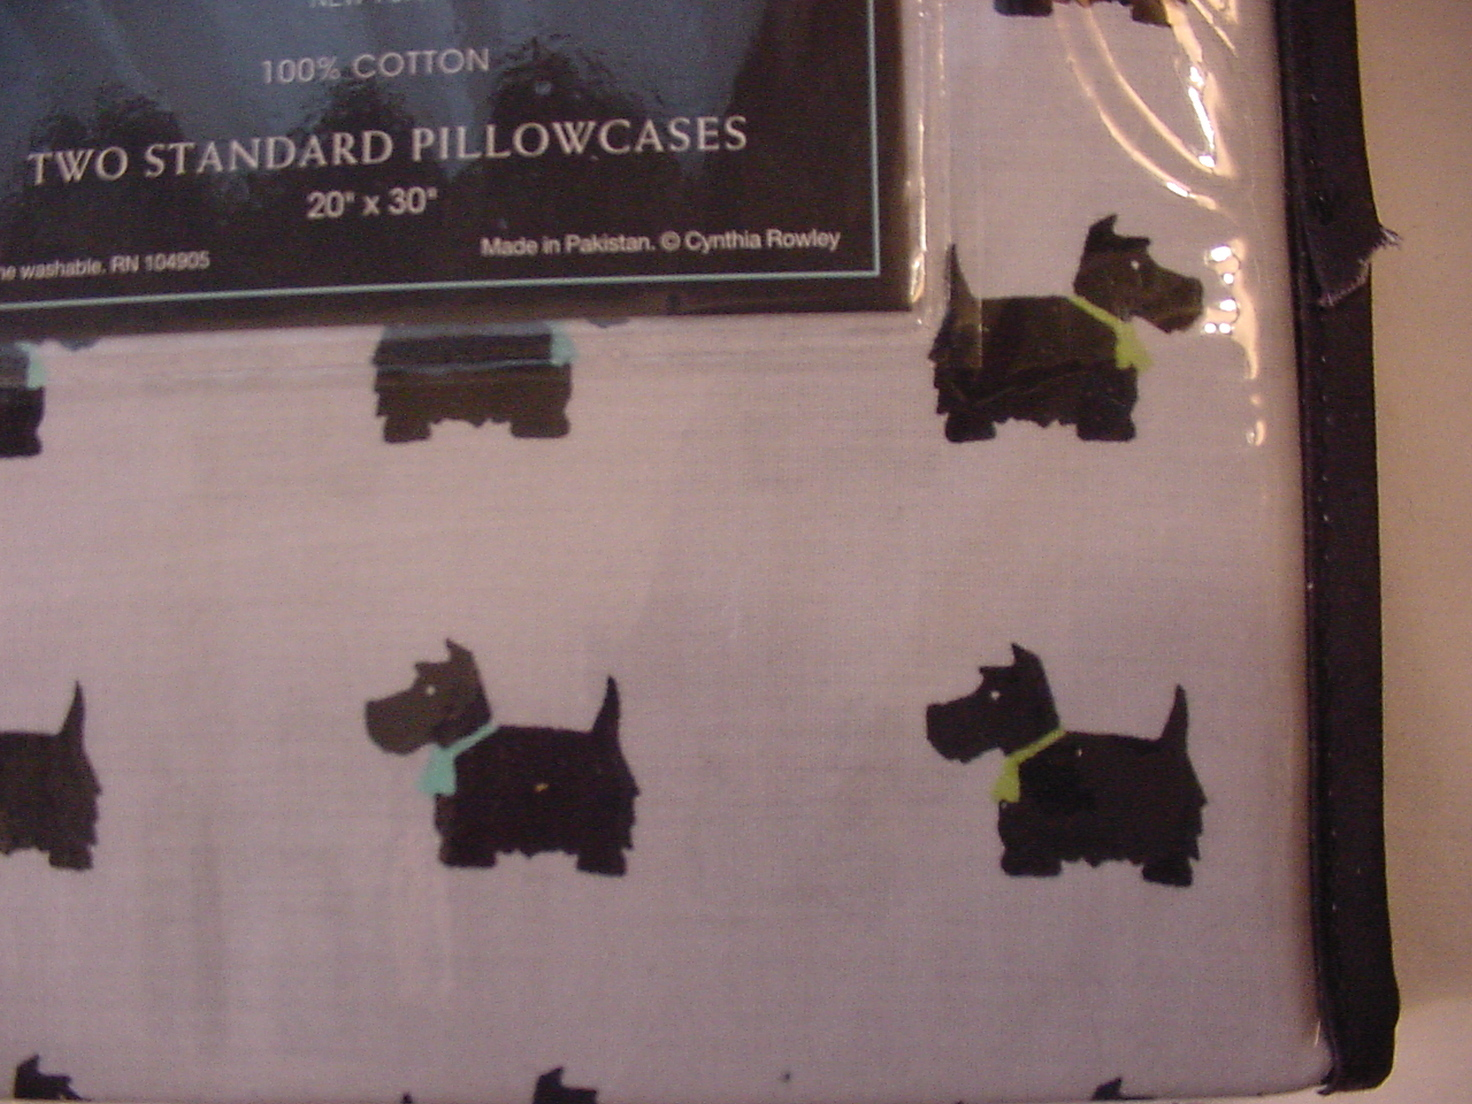 Cynthia Rowley Scotty dogs with Teal Bows on Light Gray Pillowcases Standard